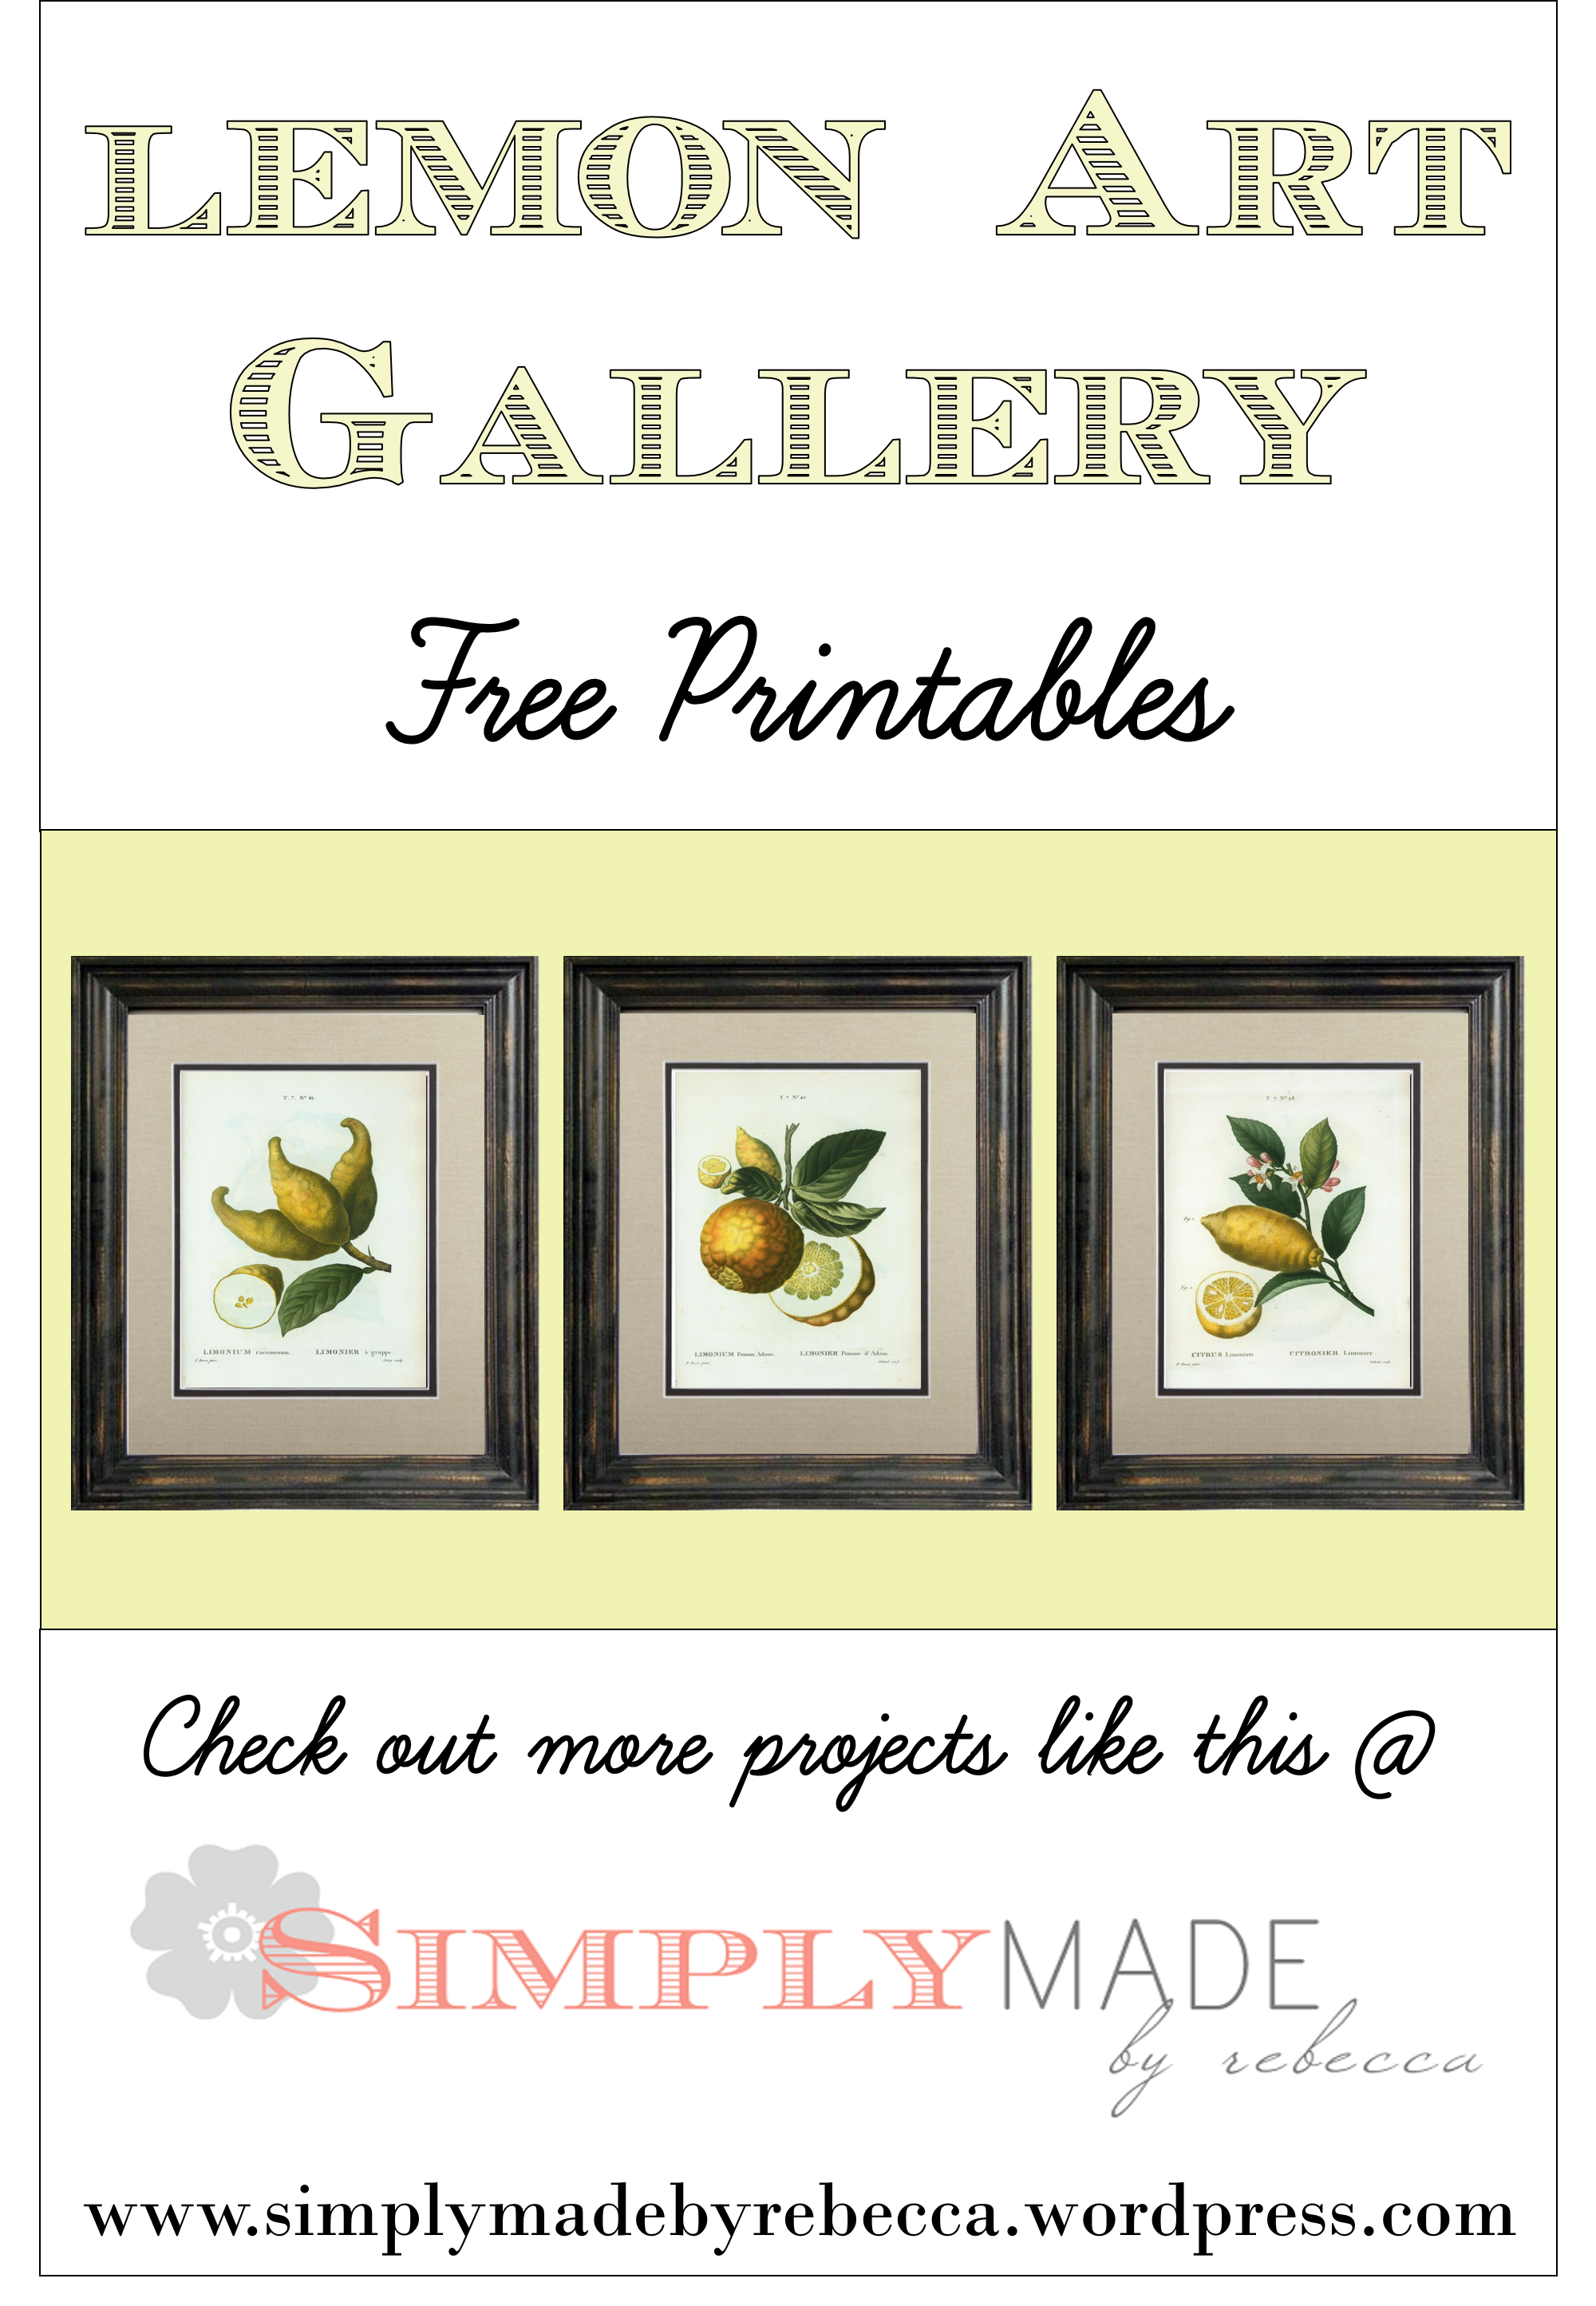 photograph regarding Free Printable Artwork to Frame referred to as Absolutely free Printable Lemon Artwork Basically Intended by means of Rebecca Lemon